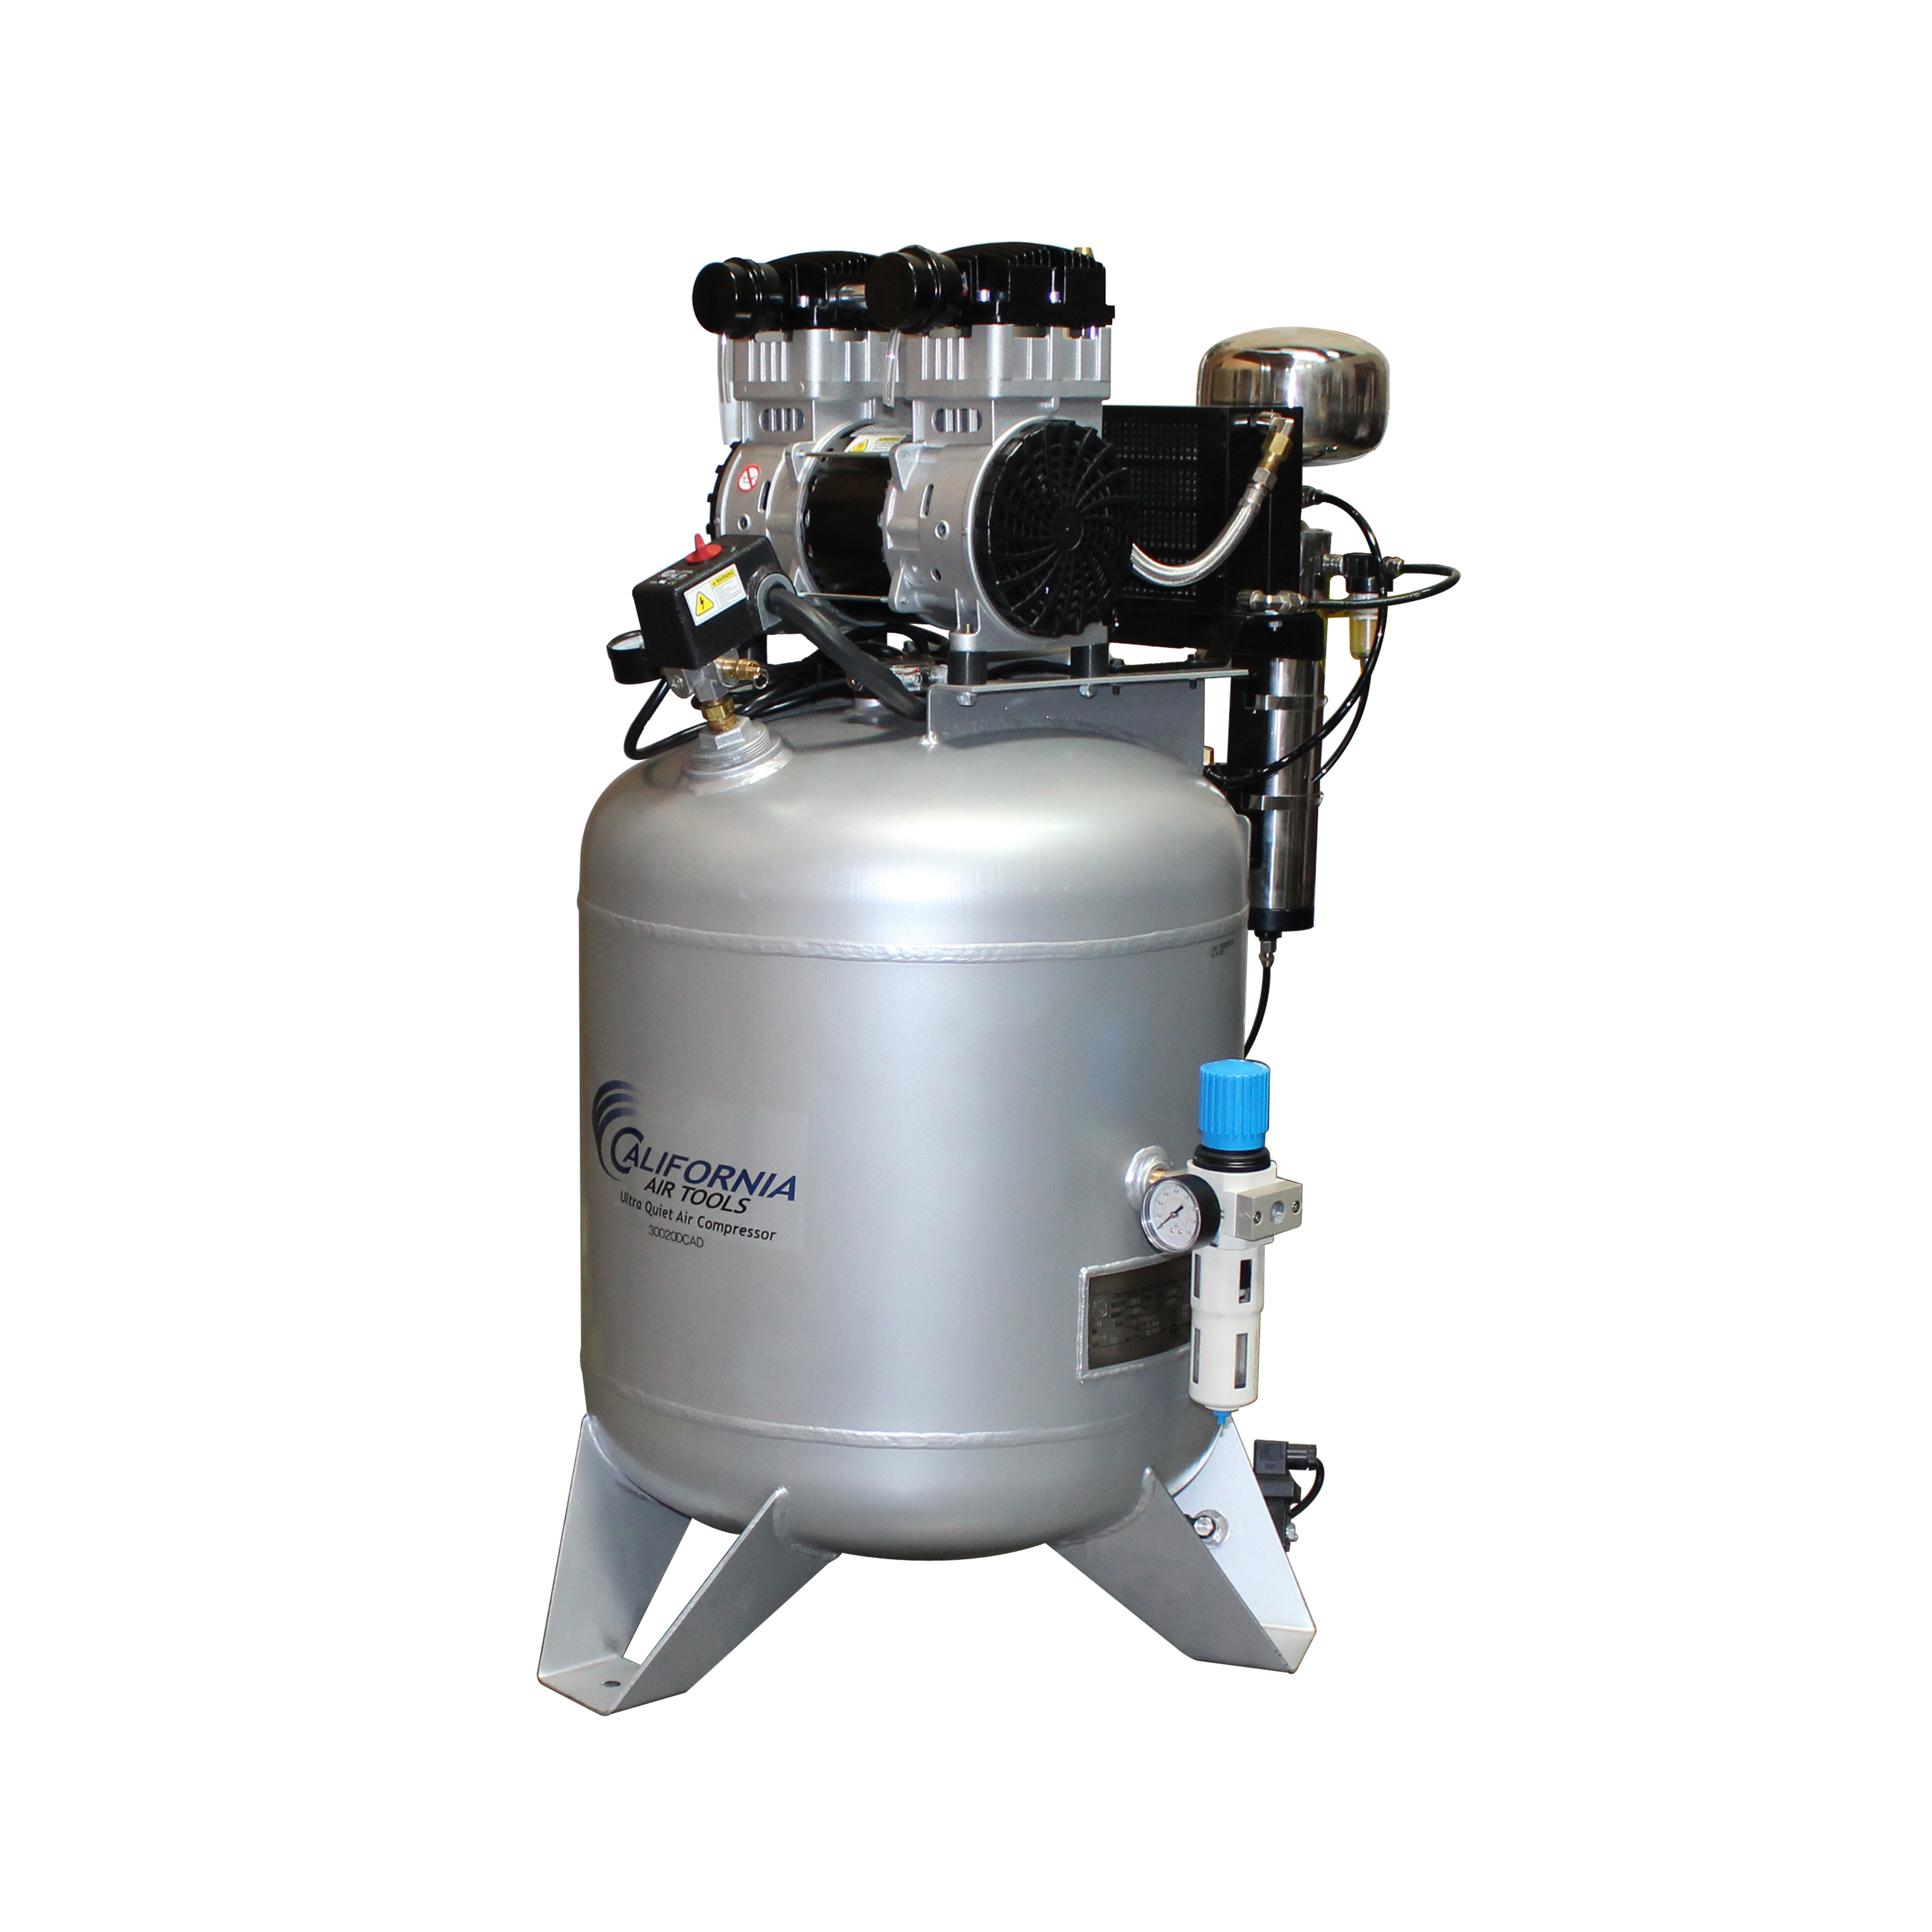 California Air Tools 30020DCAD Ultra Quiet & Oil-Free 2.0 Hp, 30.0 Gal. Steel Tank Air Compressor with Air Drying System & Auto Drain